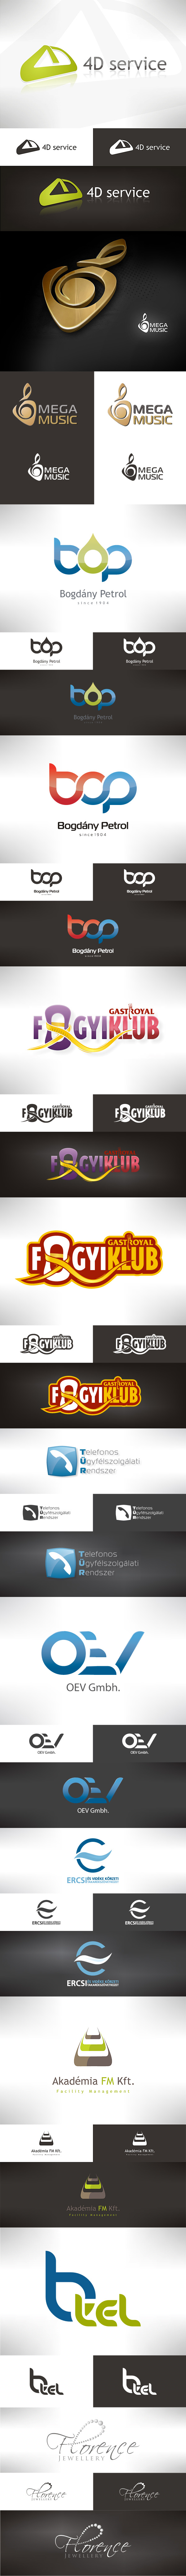 Best of my logo designs by VictoryDesign